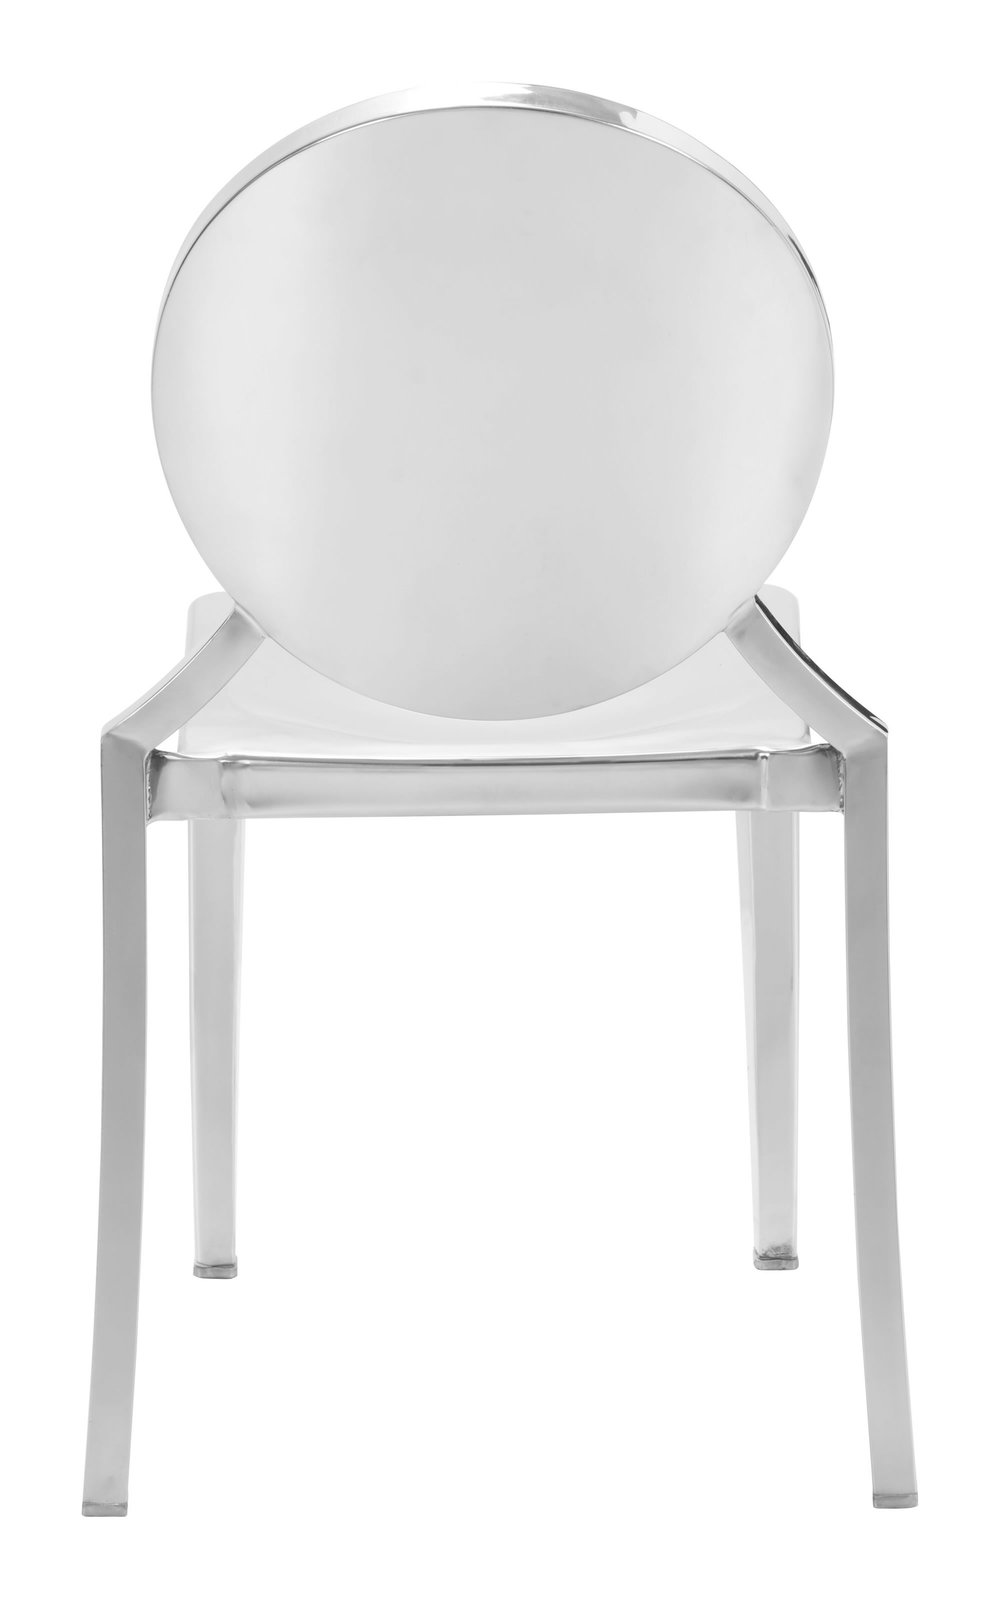 Zuo Modern Contemporary - Eclipse Dining Chair - Set of 2 - Stainless Steel